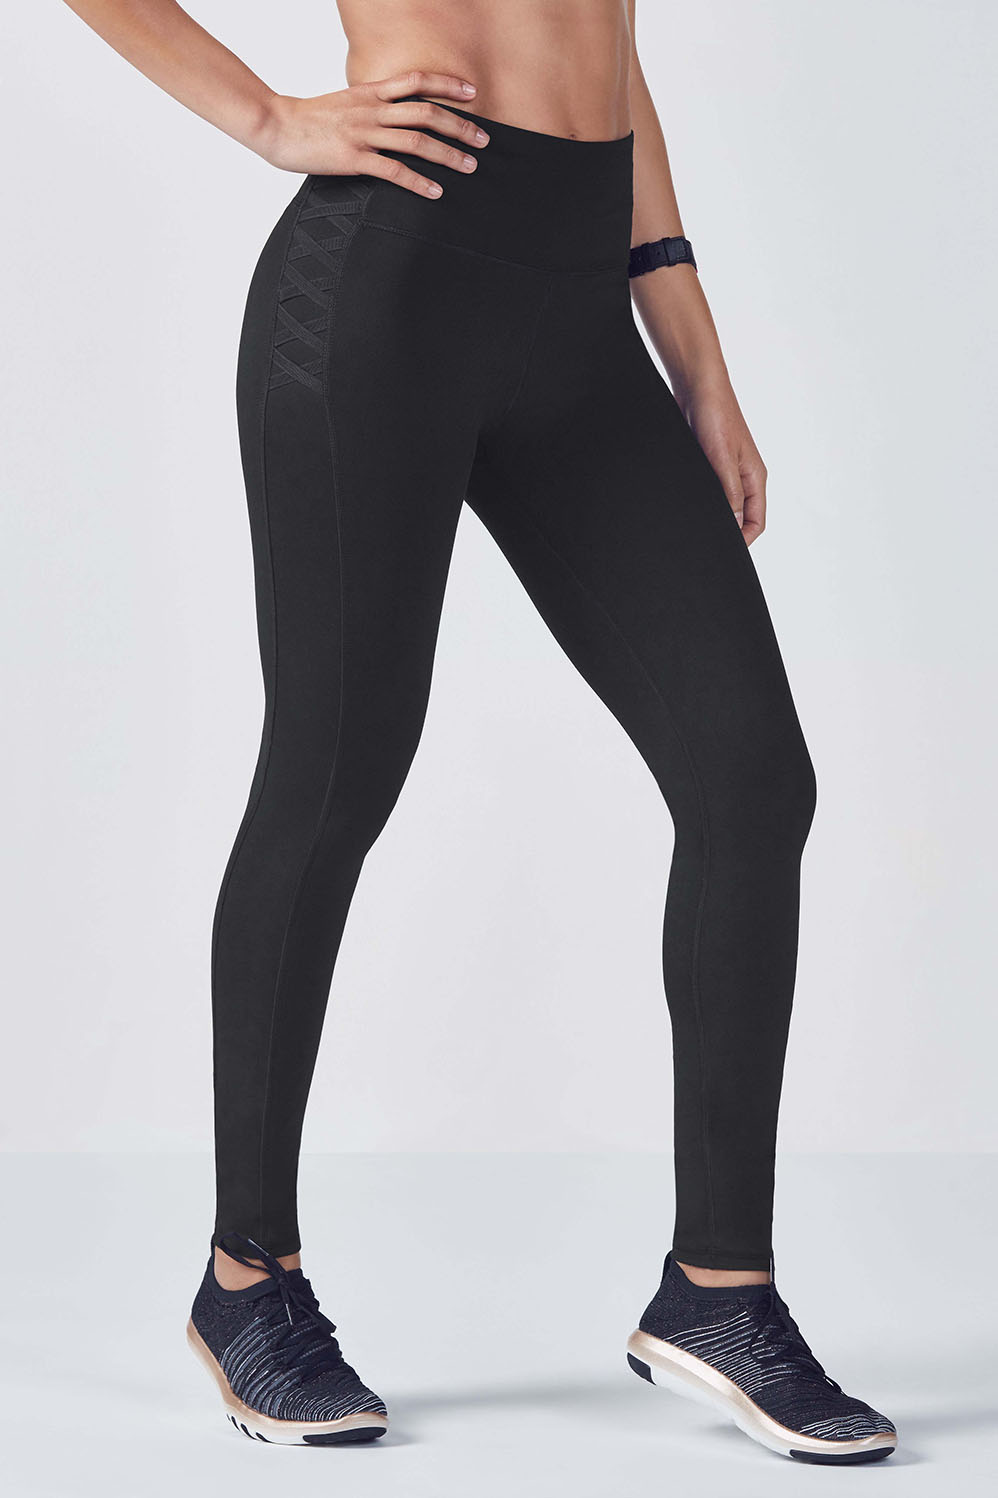 c86b2248a High-Waisted Statement PowerHold® Legging - Fabletics